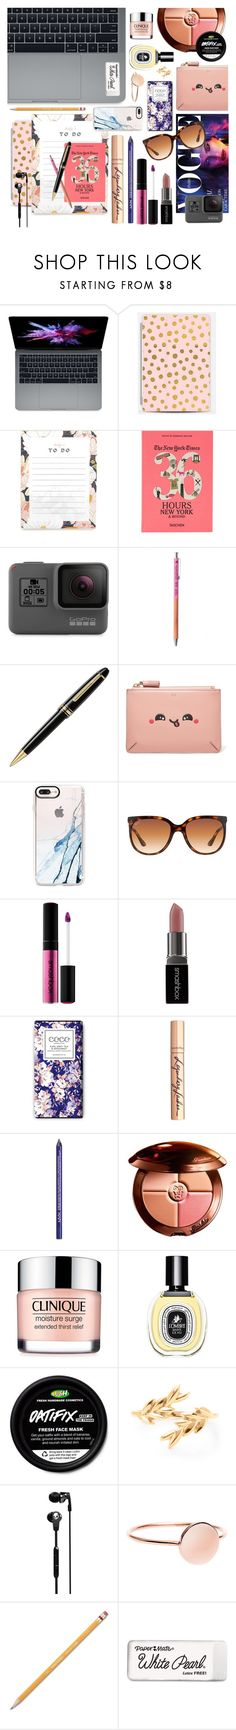 """My Desktop"" by ashley-rebecca ❤ liked on Polyvore featuring Taschen, GoPro, Montblanc, Anya Hindmarch, Casetify, Ray-Ban, Smashbox, Charlotte Tilbury, NYX and Guerlain"